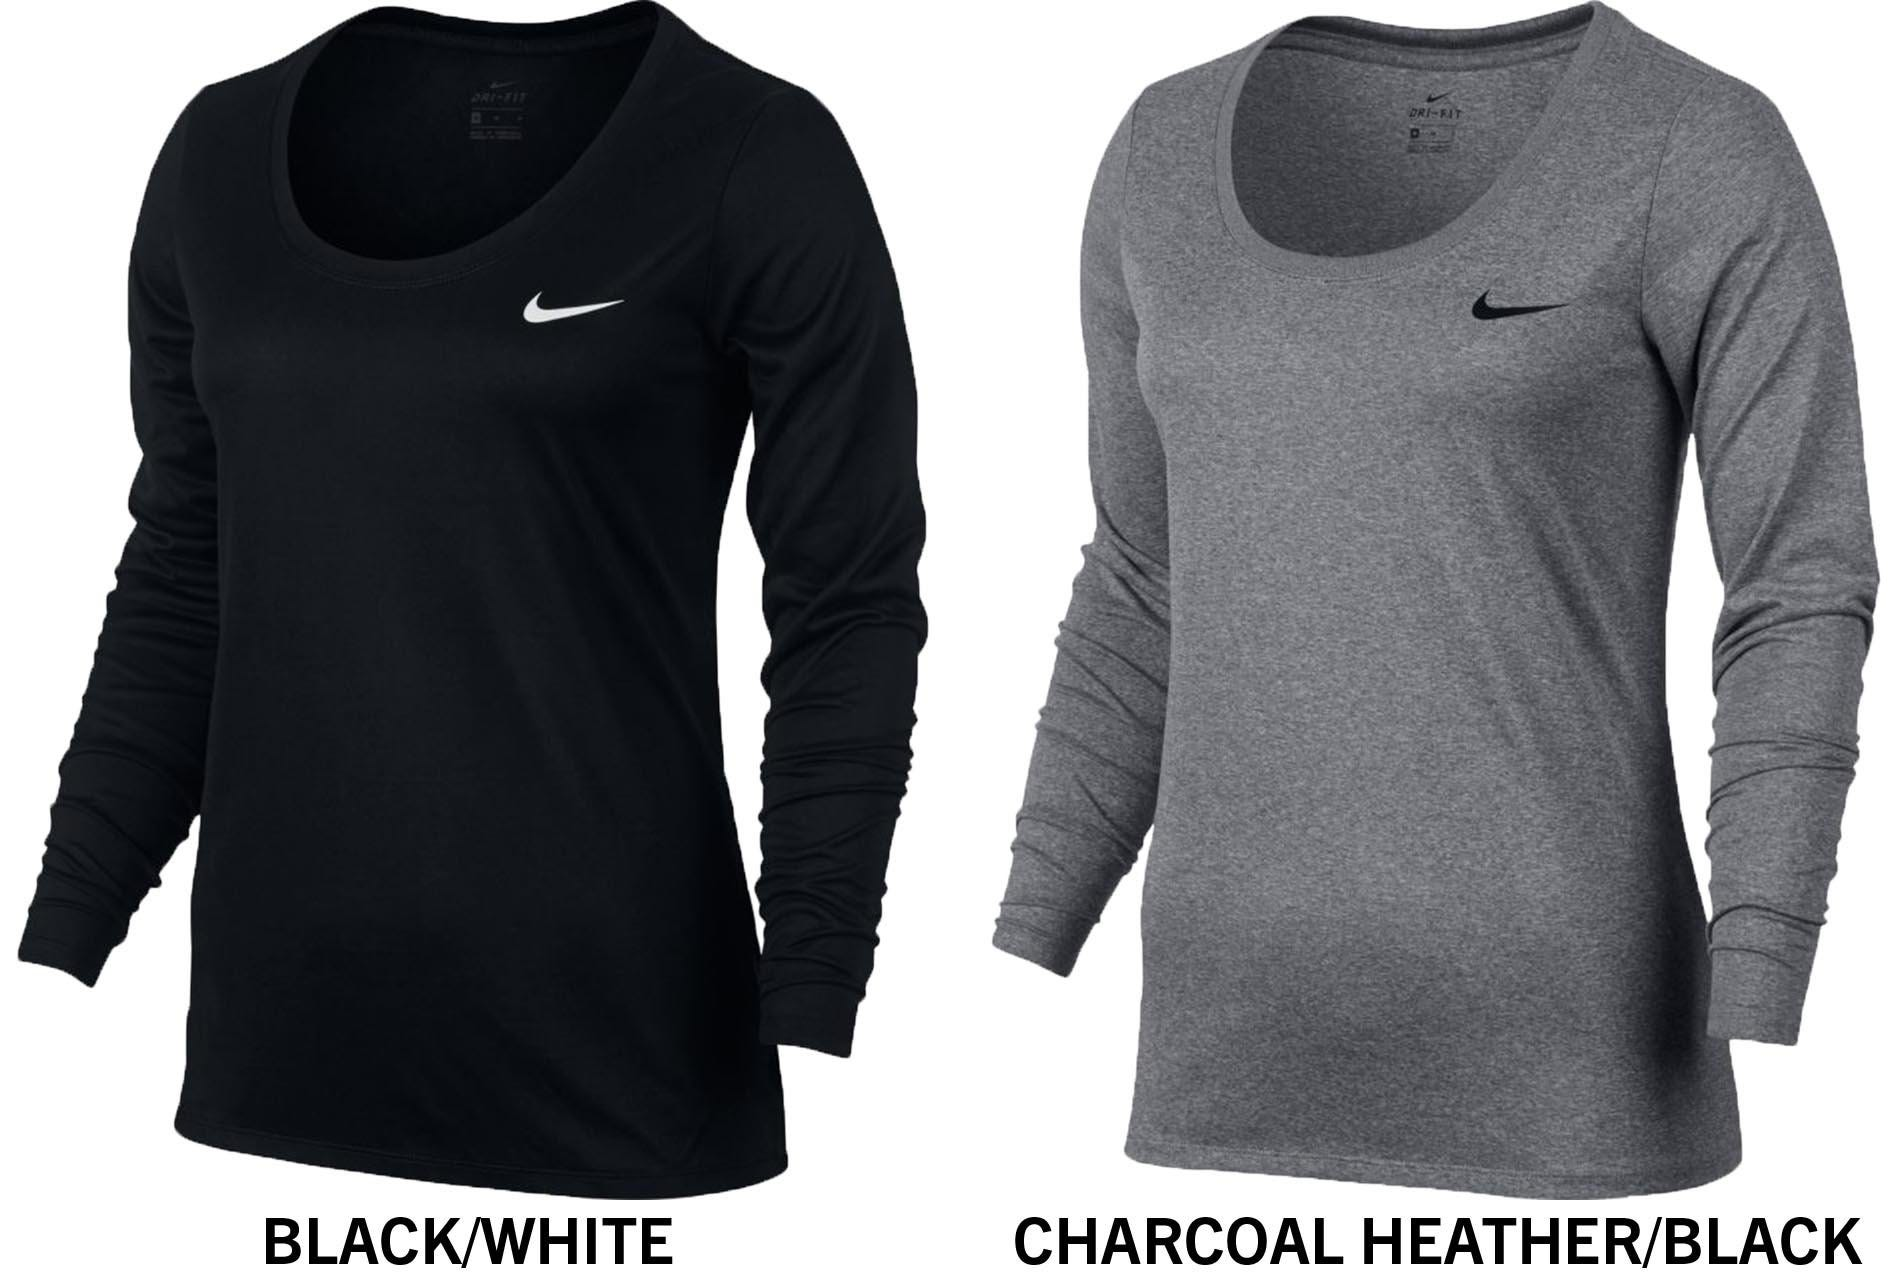 b2b55fb68c0ec Nike Dri-FIT Legend Women's Long Sleeve Training T-Shirt